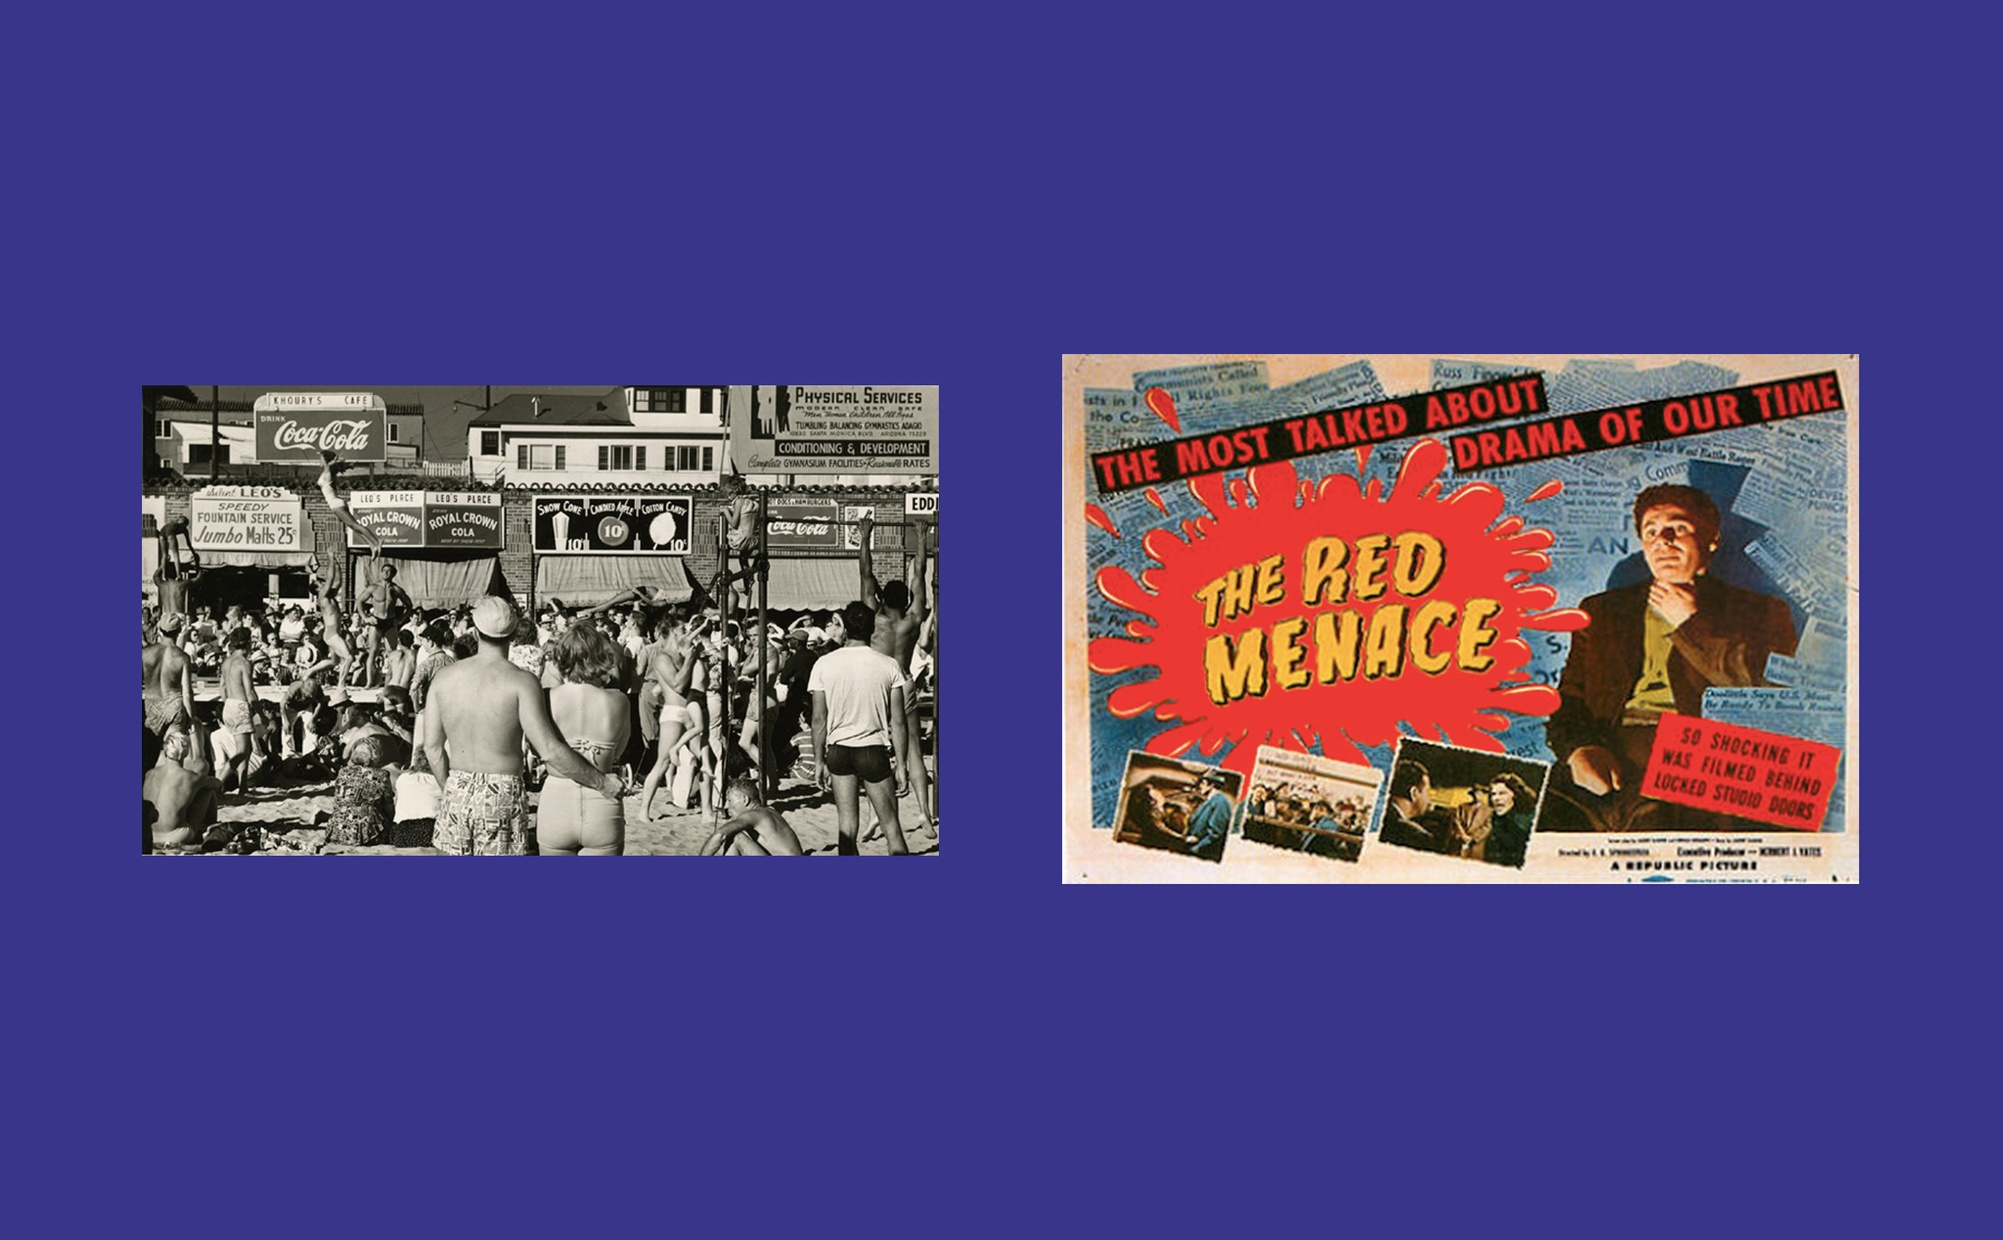 """Two images side by side, one image is a black and white photograph of a crowded beach and boardwalk, and the other image is a color print of a painting of a light-skinned man with a look of shock and text that reads """"THE MOST TALKED ABOUT DRAMA OF OUR TIME THE RED MENACE SO SHOCKING IT WAS FILMED BEHIND LOCKED STUDIO DOORS."""""""